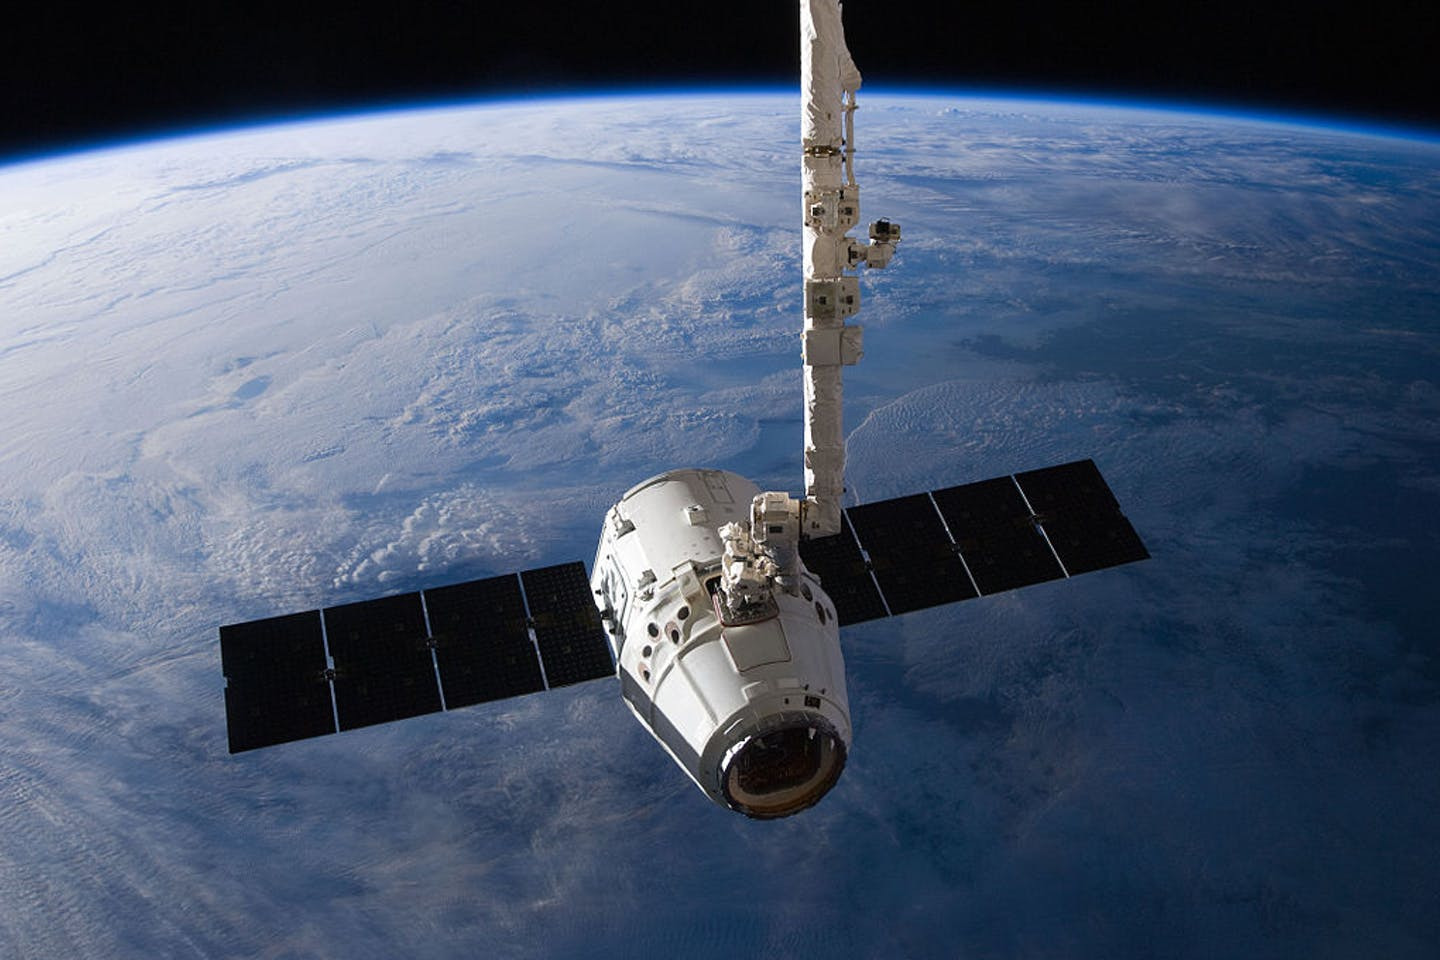 space missions in peril bec of trump